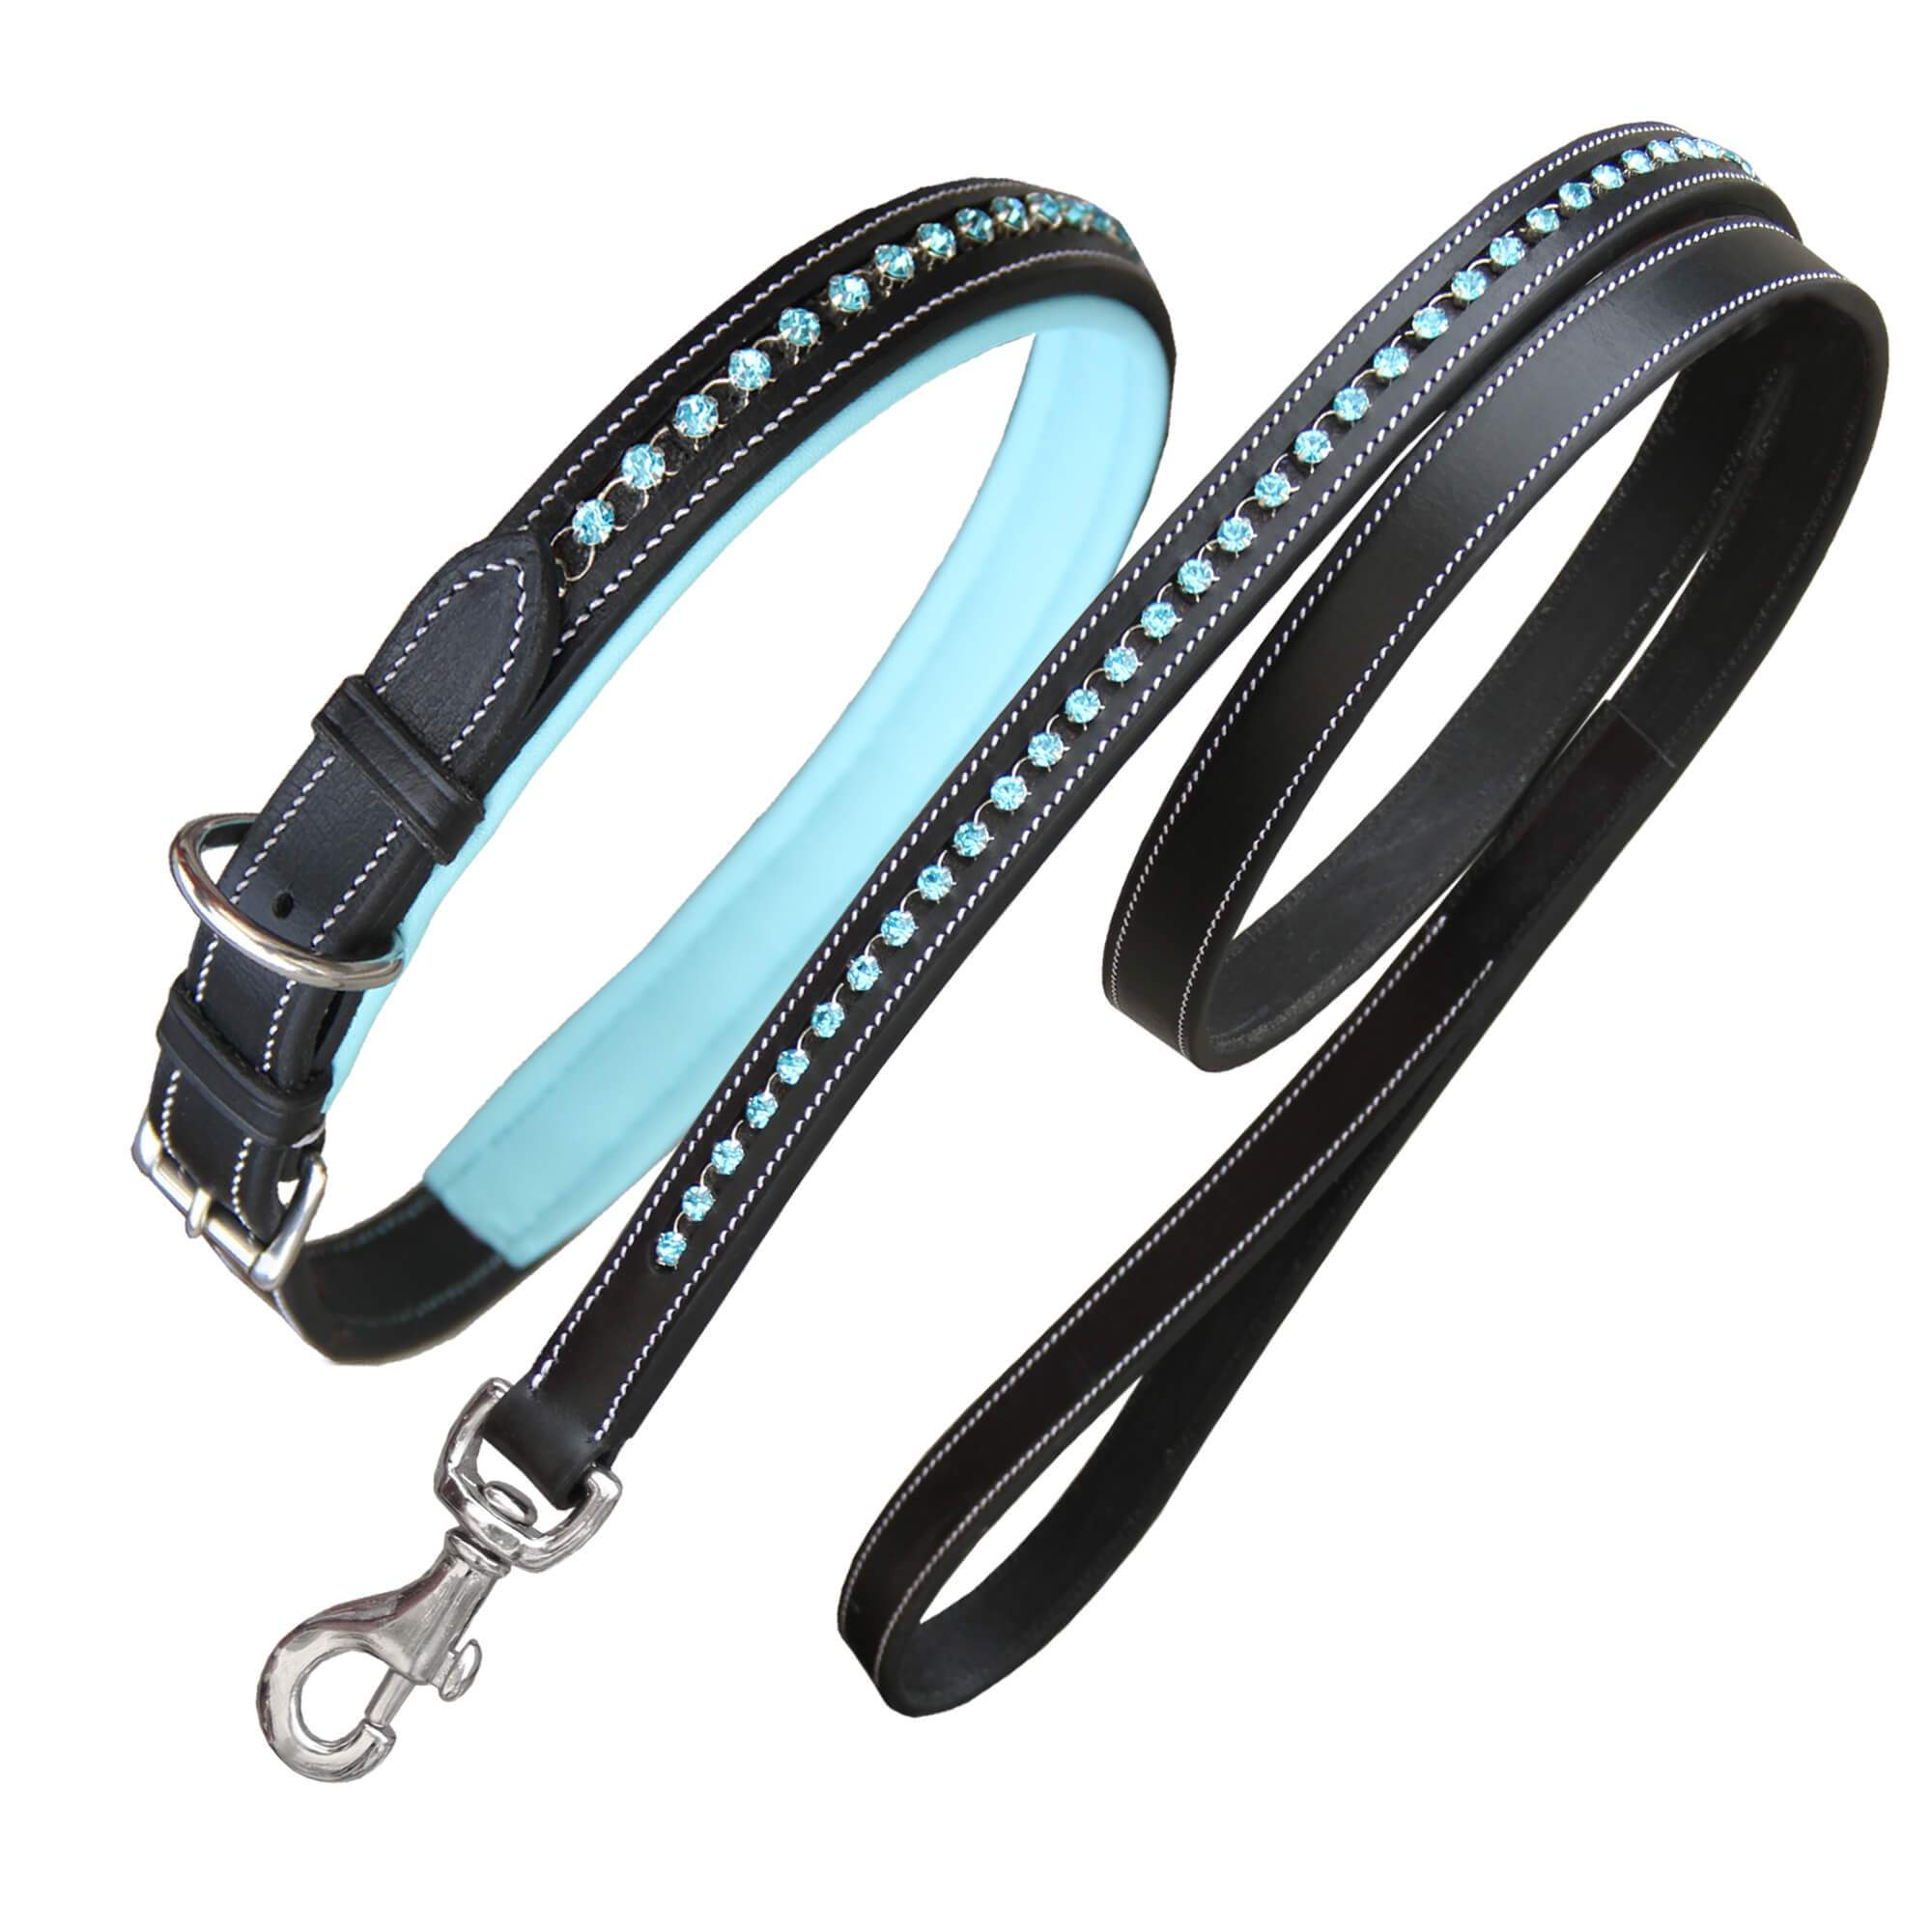 ExionPro Blue Bling Dog Collar With Lead